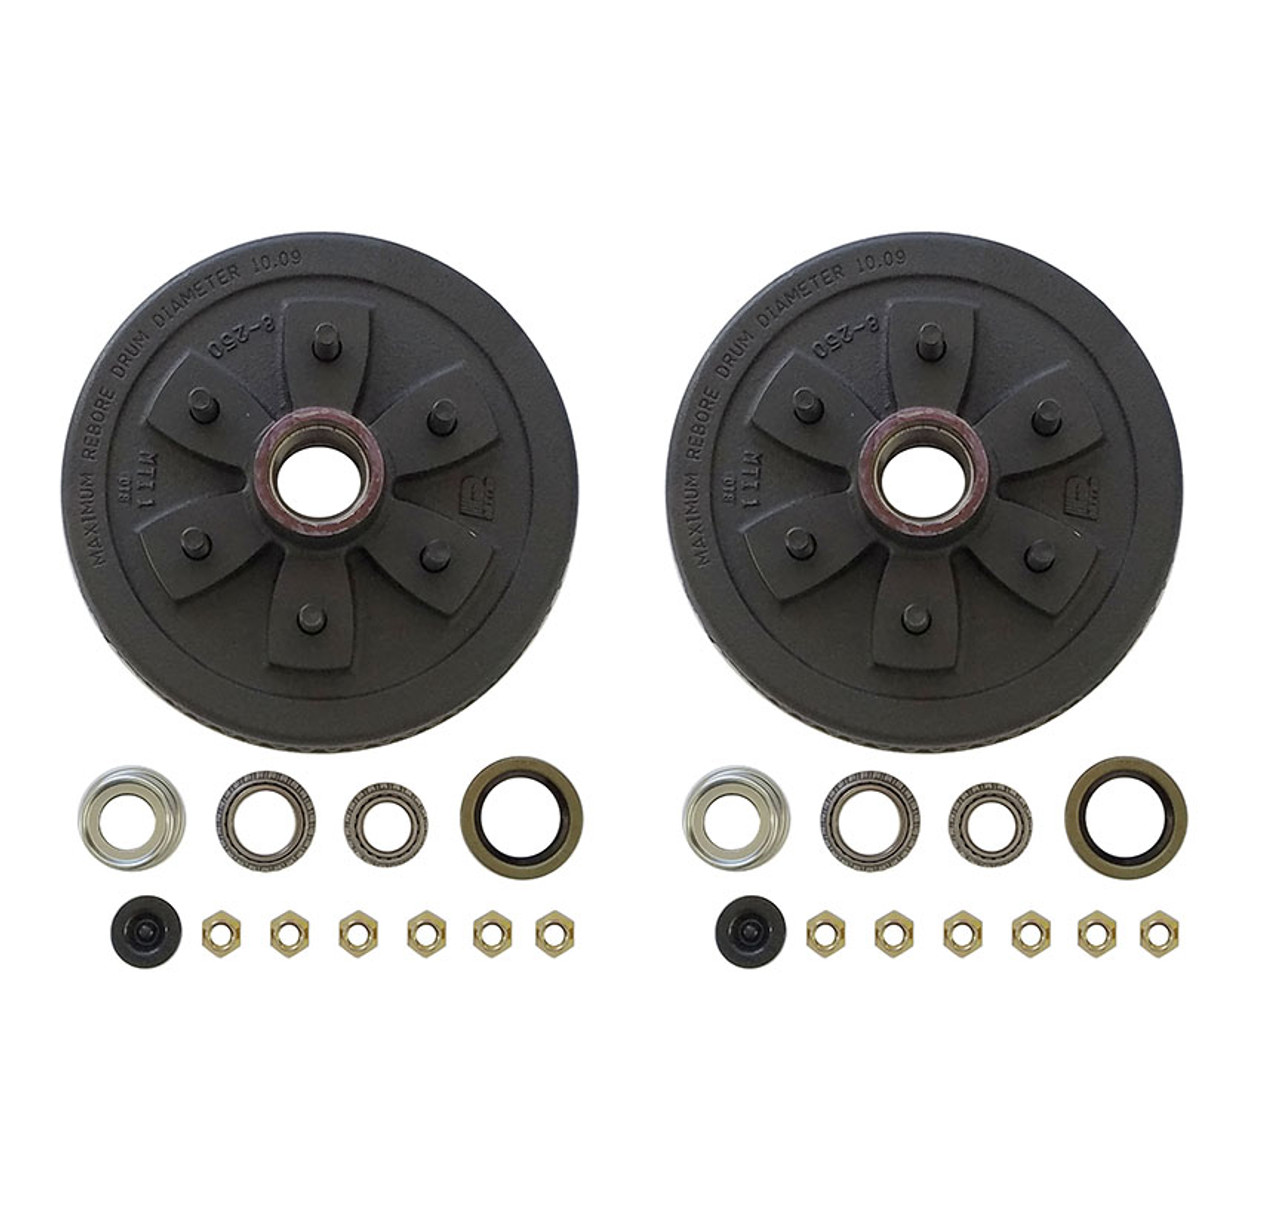 "655UHI-HDEZ --- 6 on 5-1/2"" Hub and Drum Assembly for 10"" Brakes - Pair - 3,500 lb - Ez Lube"